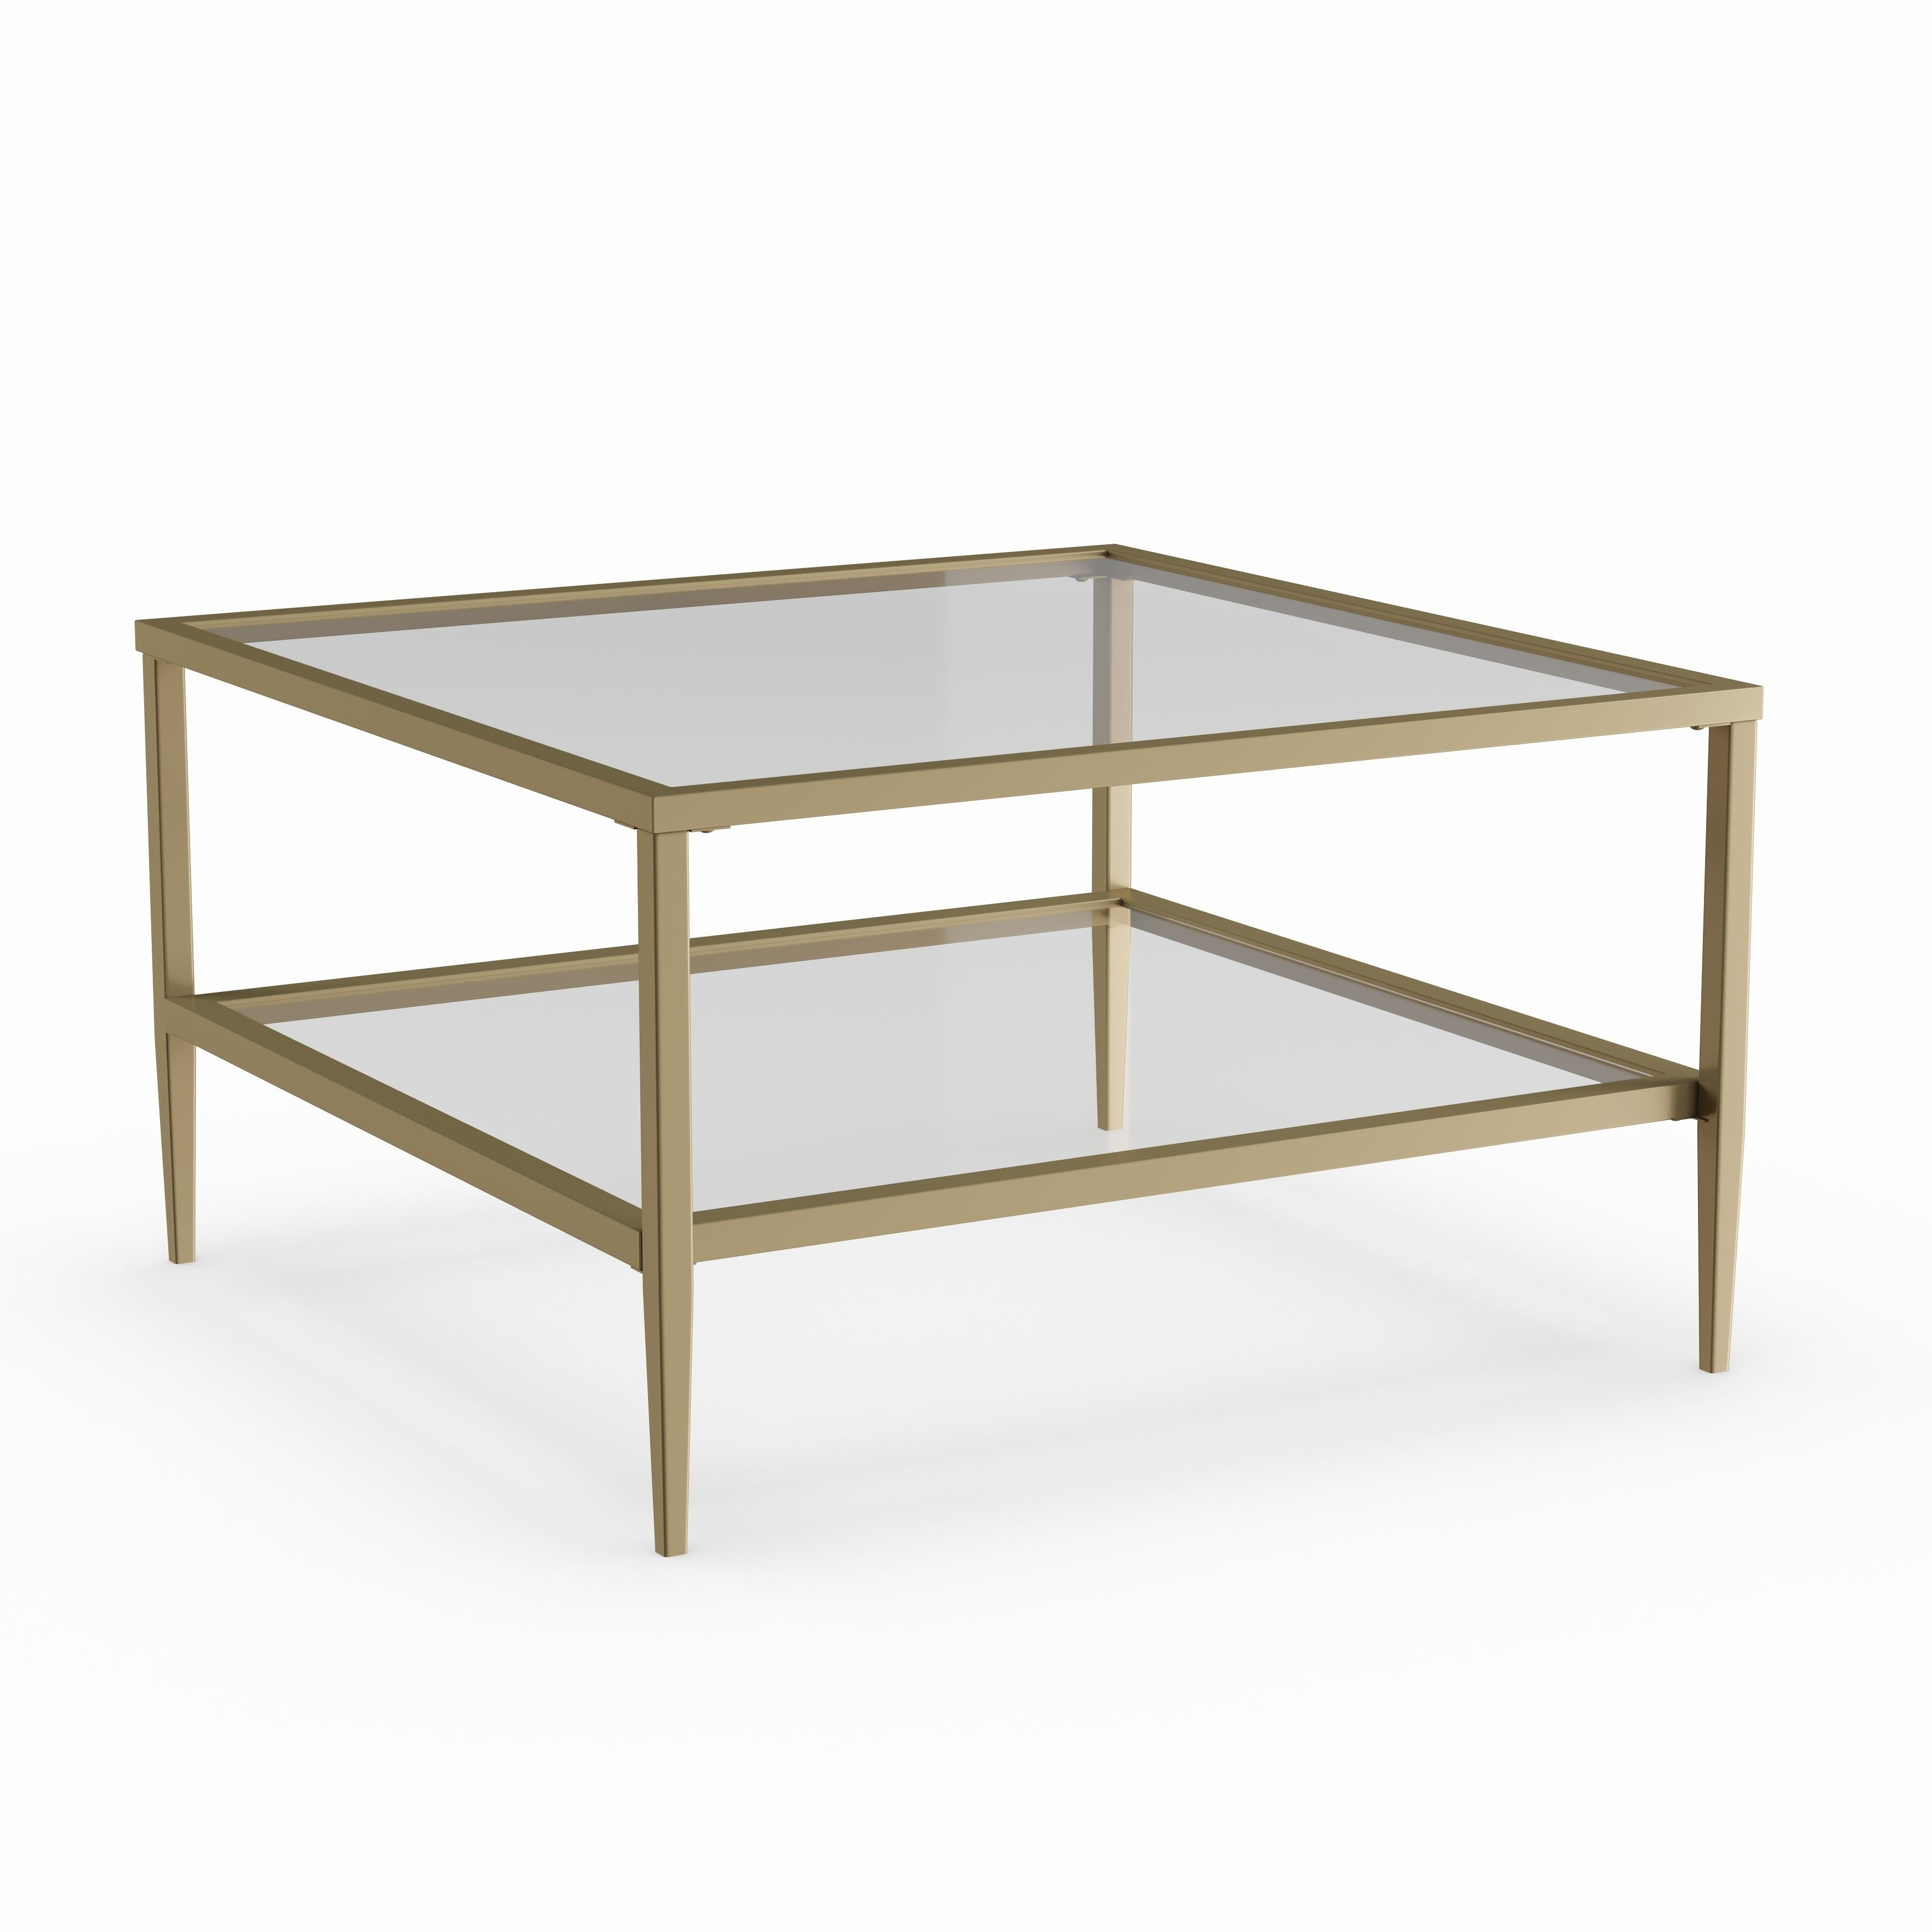 Judd Square Glass Coffee Table With Shelf Klarity Glass Furniture Square Glass Coffee Table Glass Coffee Table Modern Glass Coffee Table [ 1200 x 1200 Pixel ]